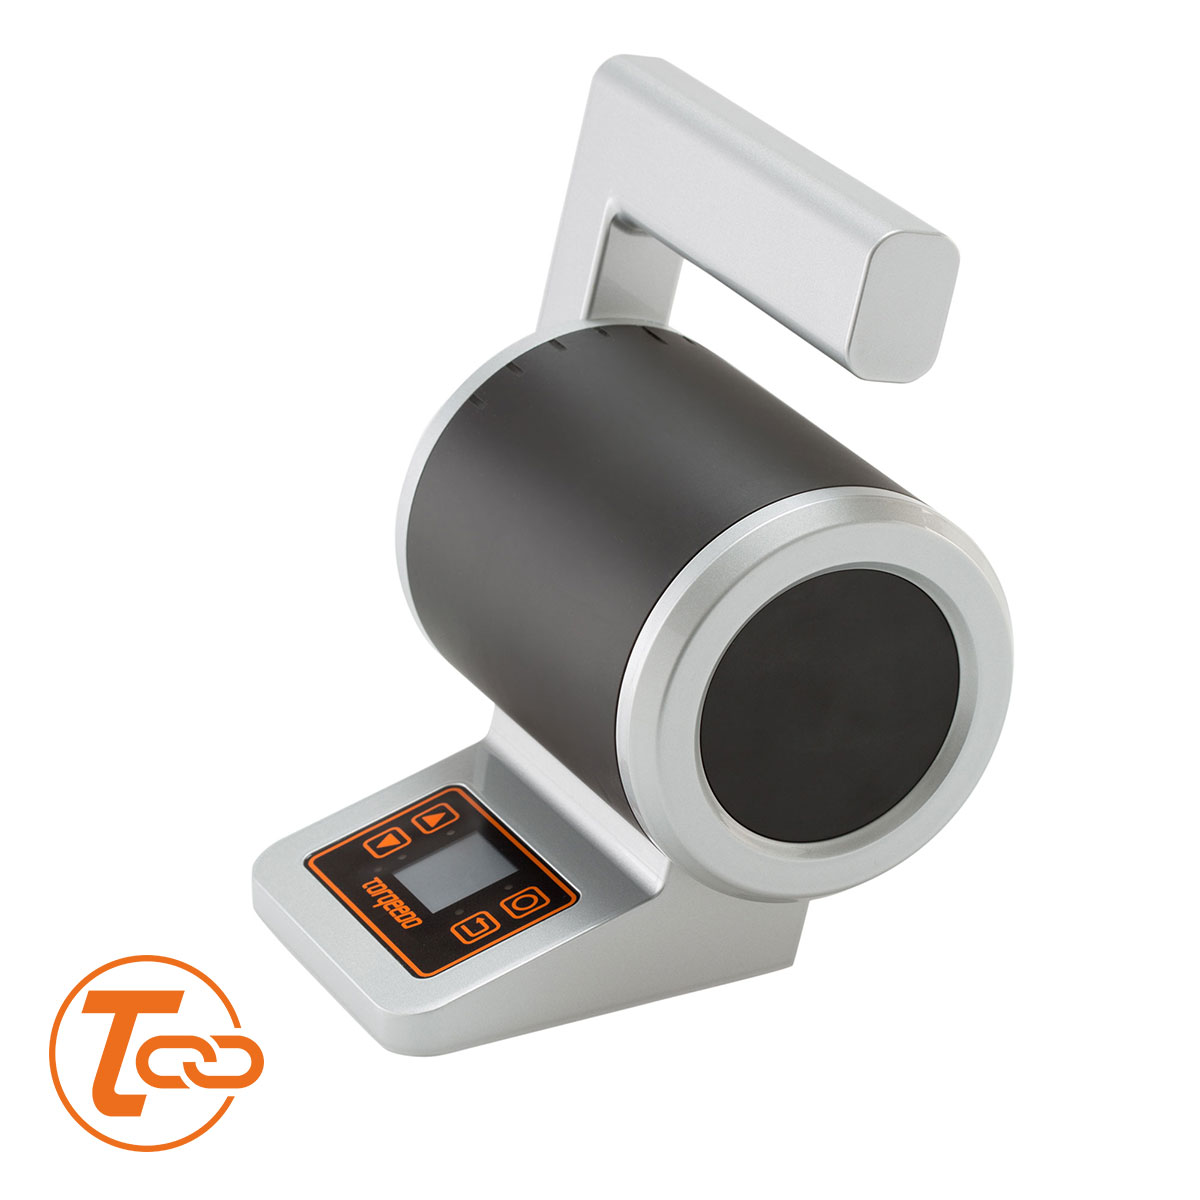 Torqeedo Throttle top mounting